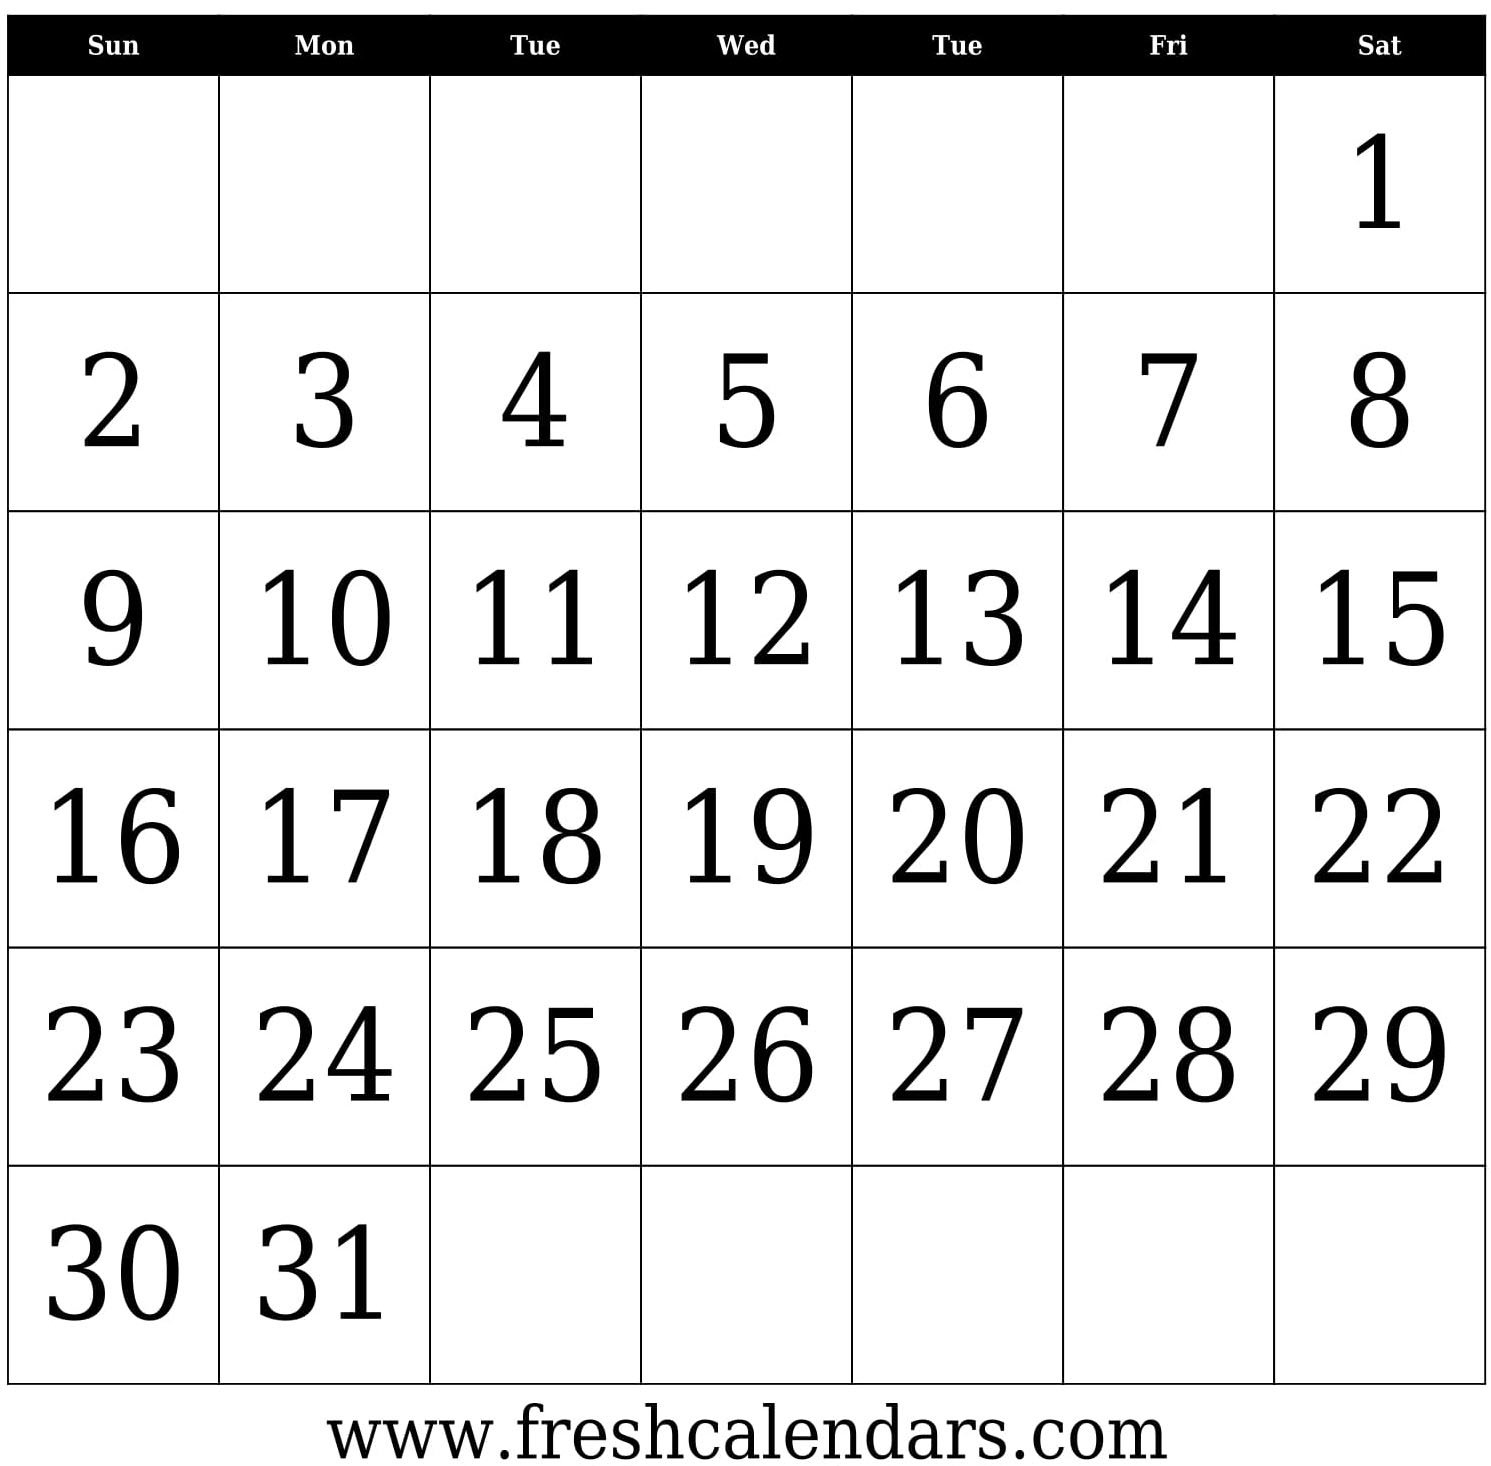 31 Day Calendar Template Printable – Samyysandra 31 Day Calendar Templates